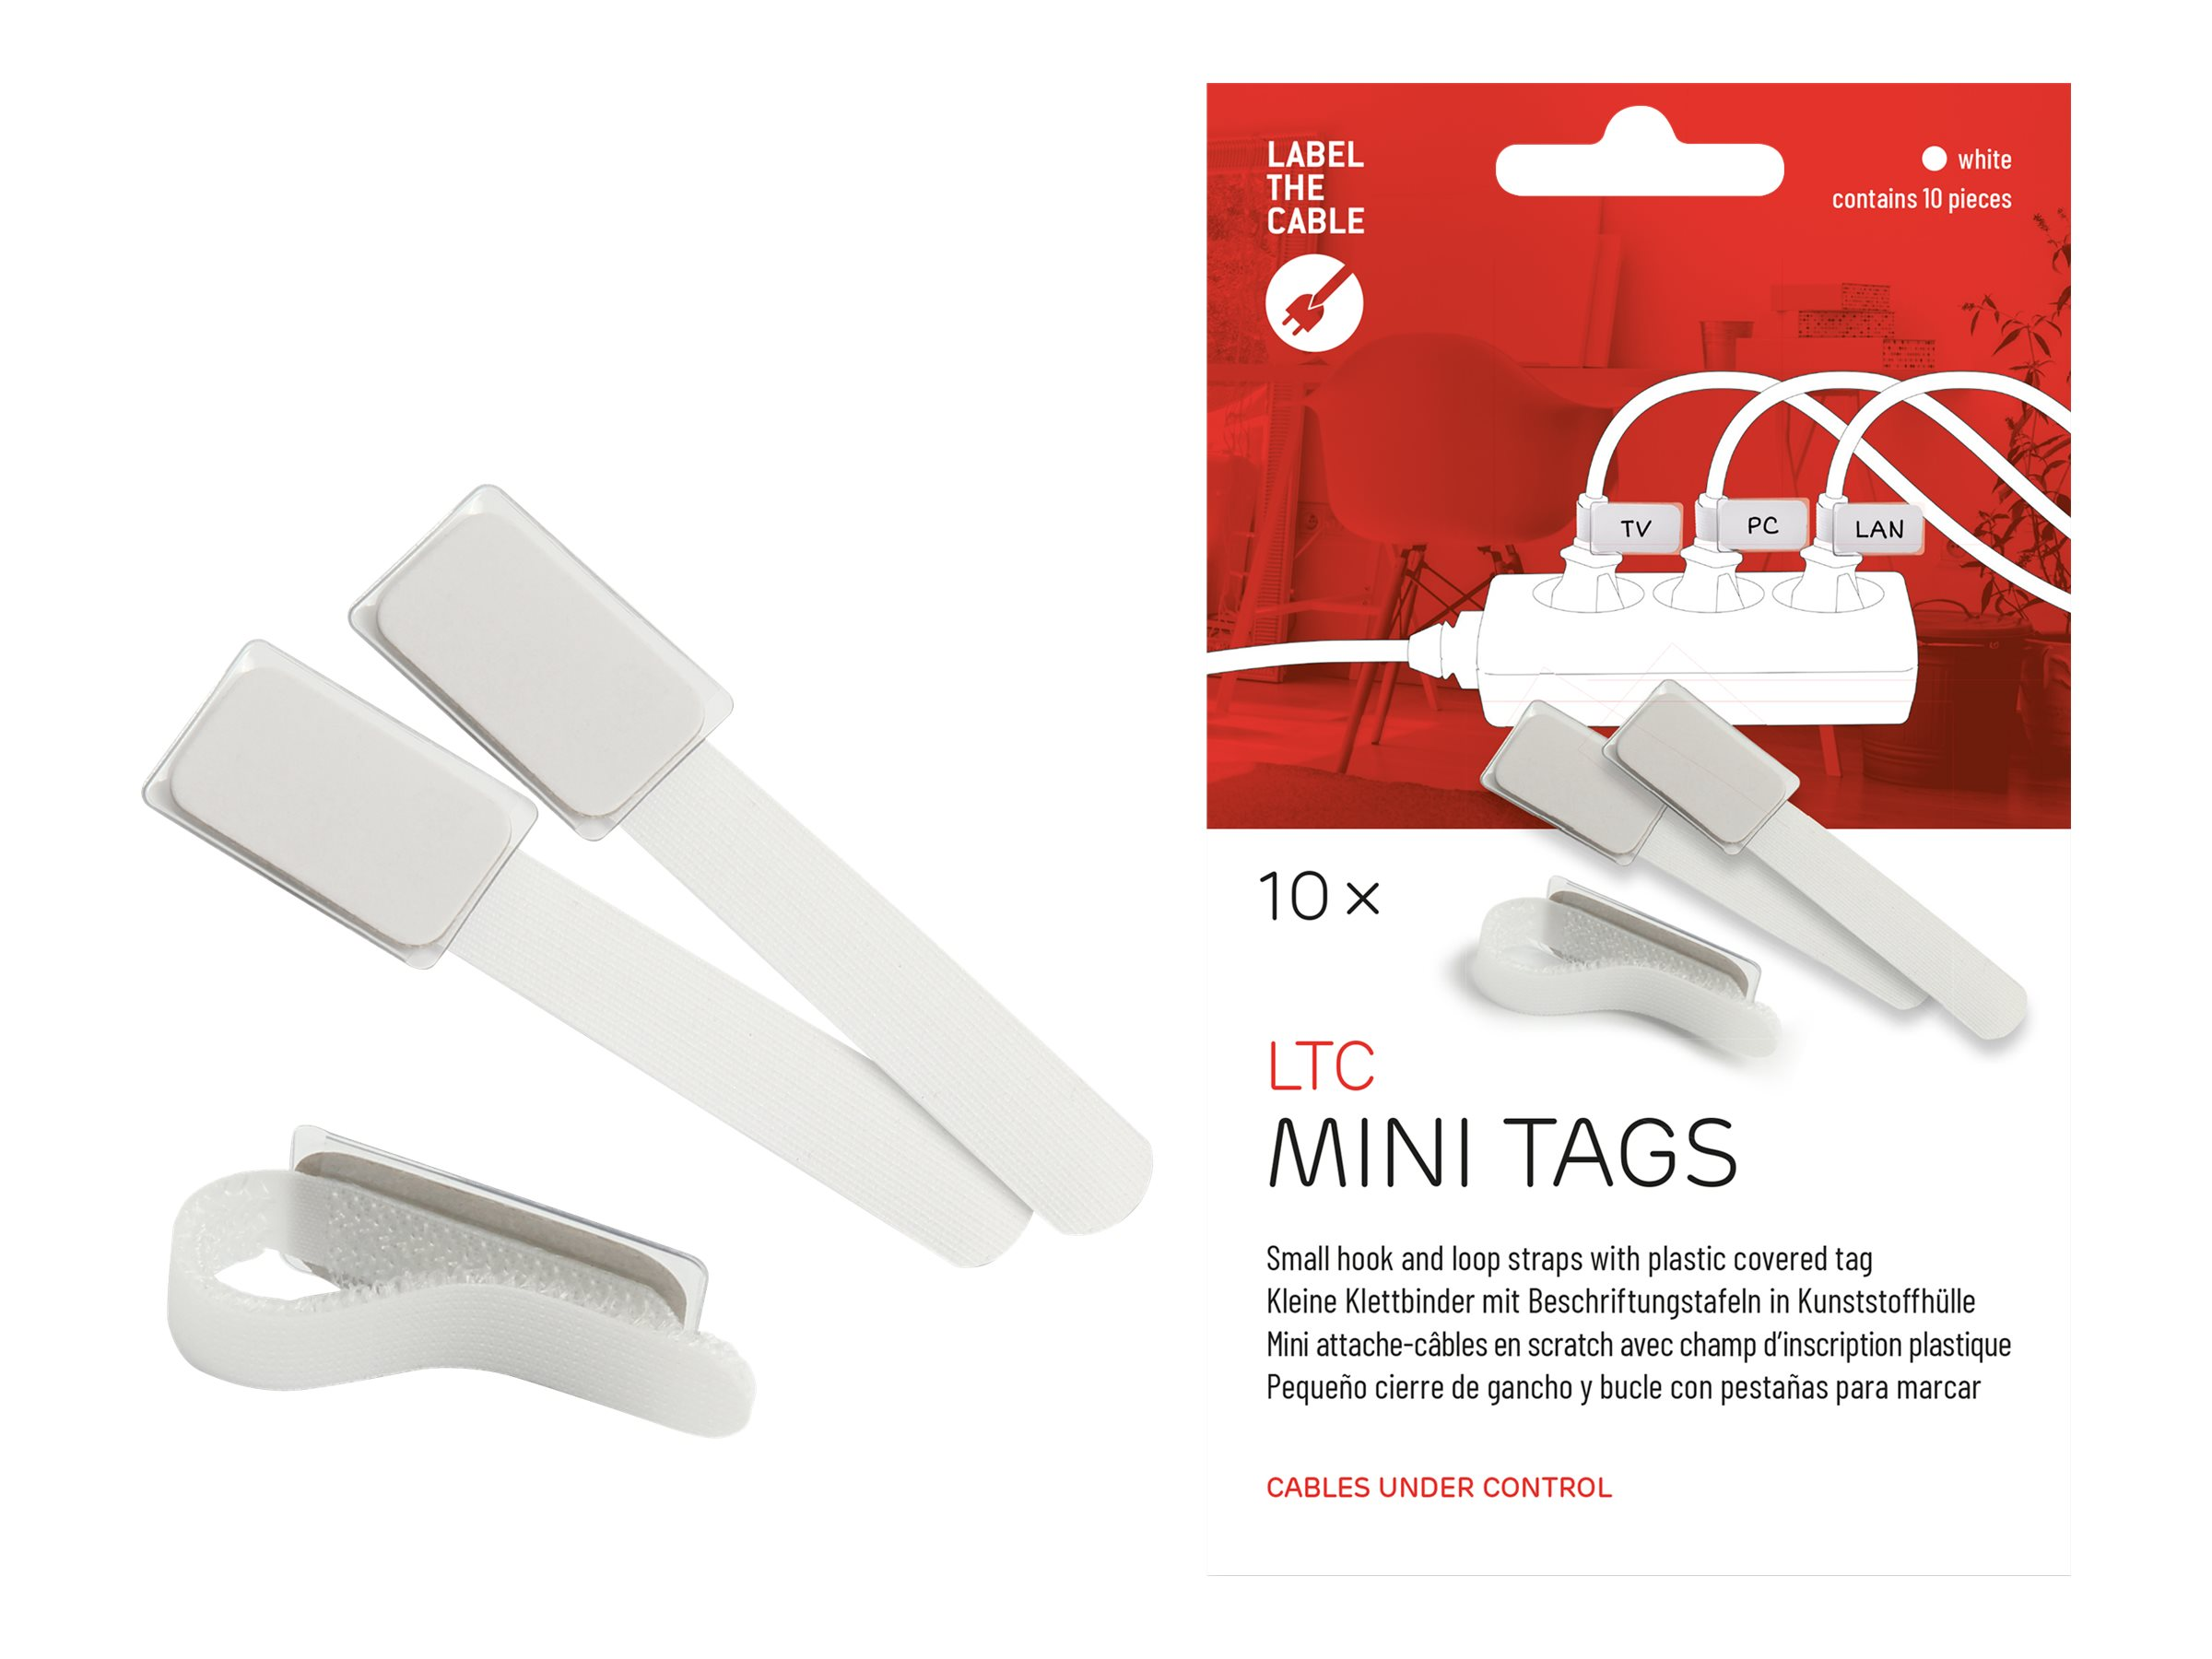 Label-the-cable LTC MINI TAGS - Draht-/Kabel-Marker - 9 cm - weiß (Packung mit 10)